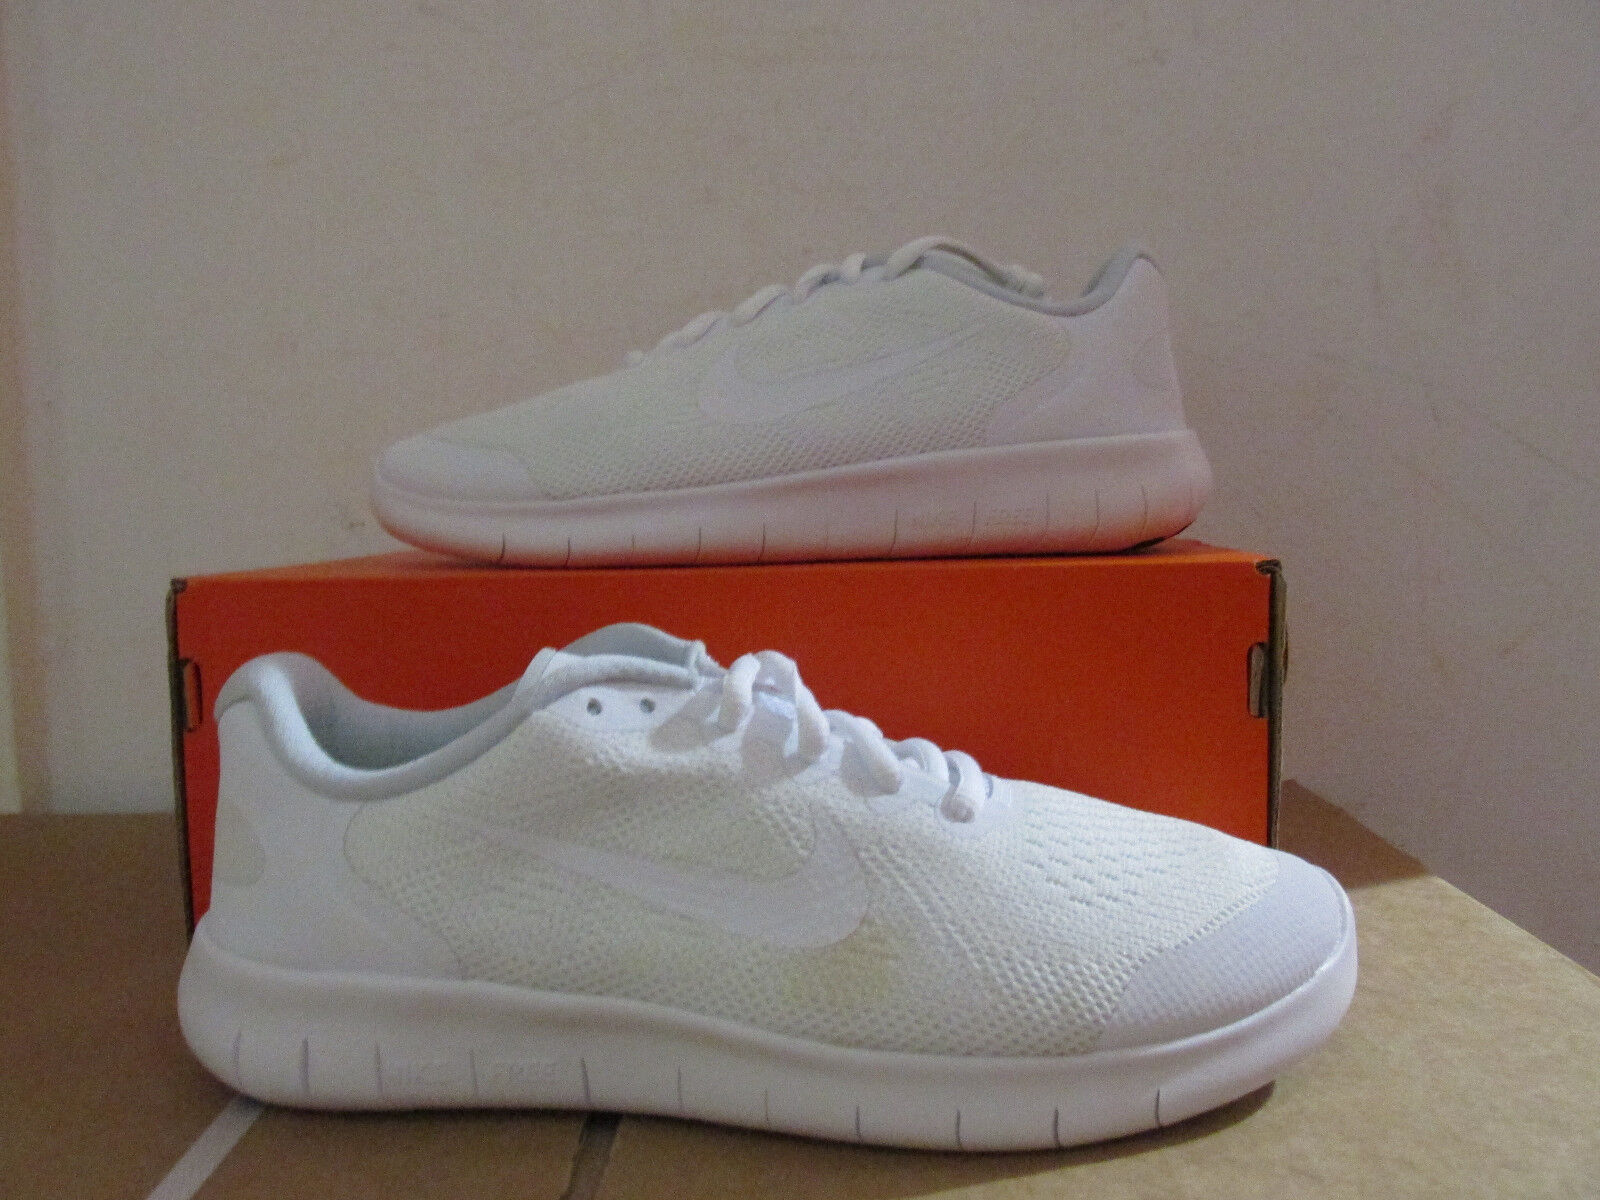 Nike Free RN 2018 GS Running Trainers 904255 100 Sneakers Shoes CLEARANCE